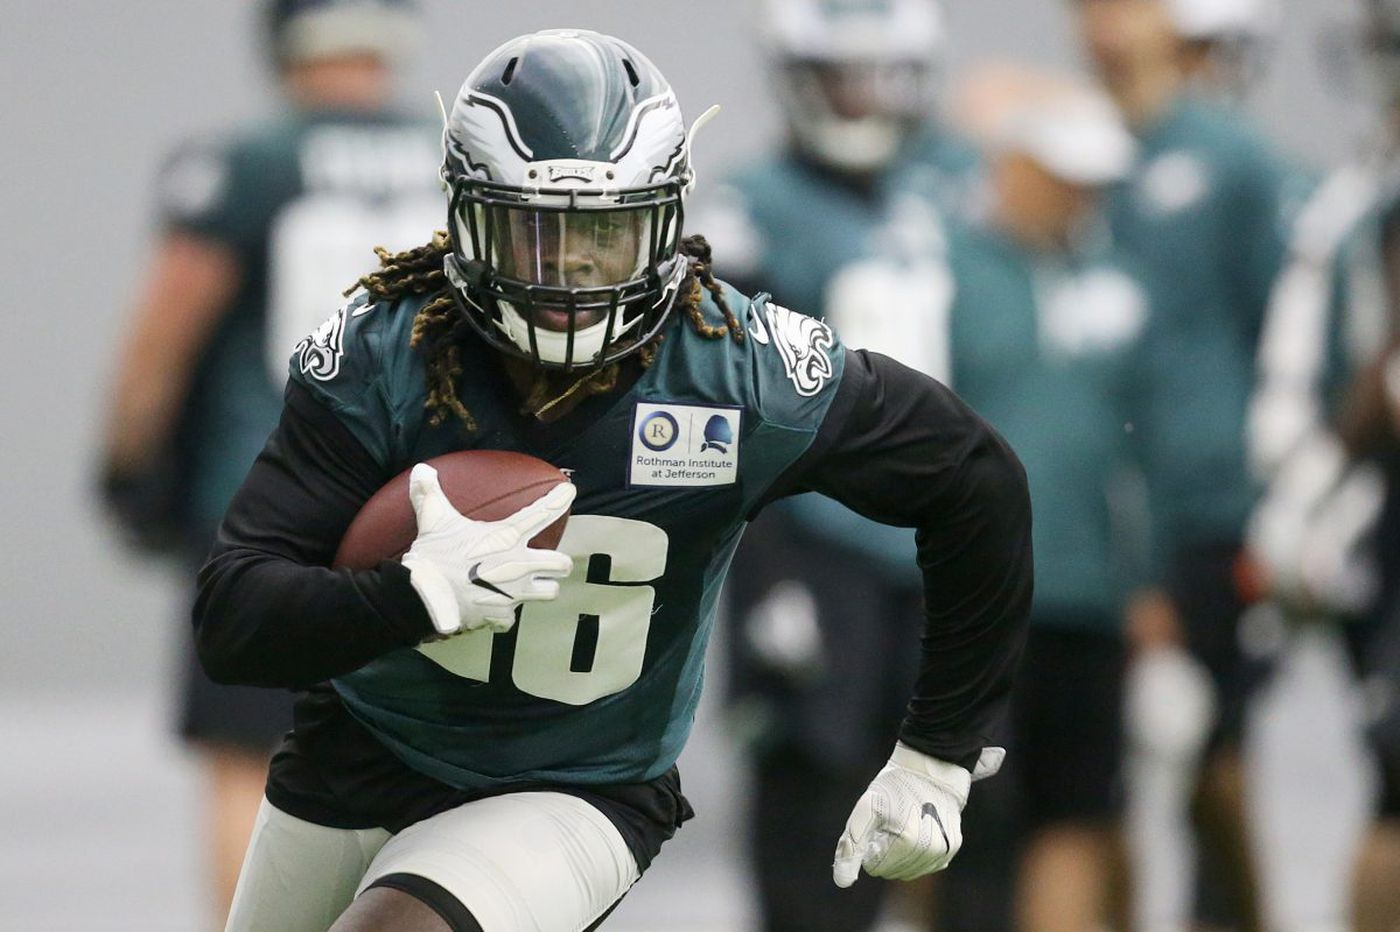 Jay Ajayi enters in a contract year ready to be the Eagles' workhorse